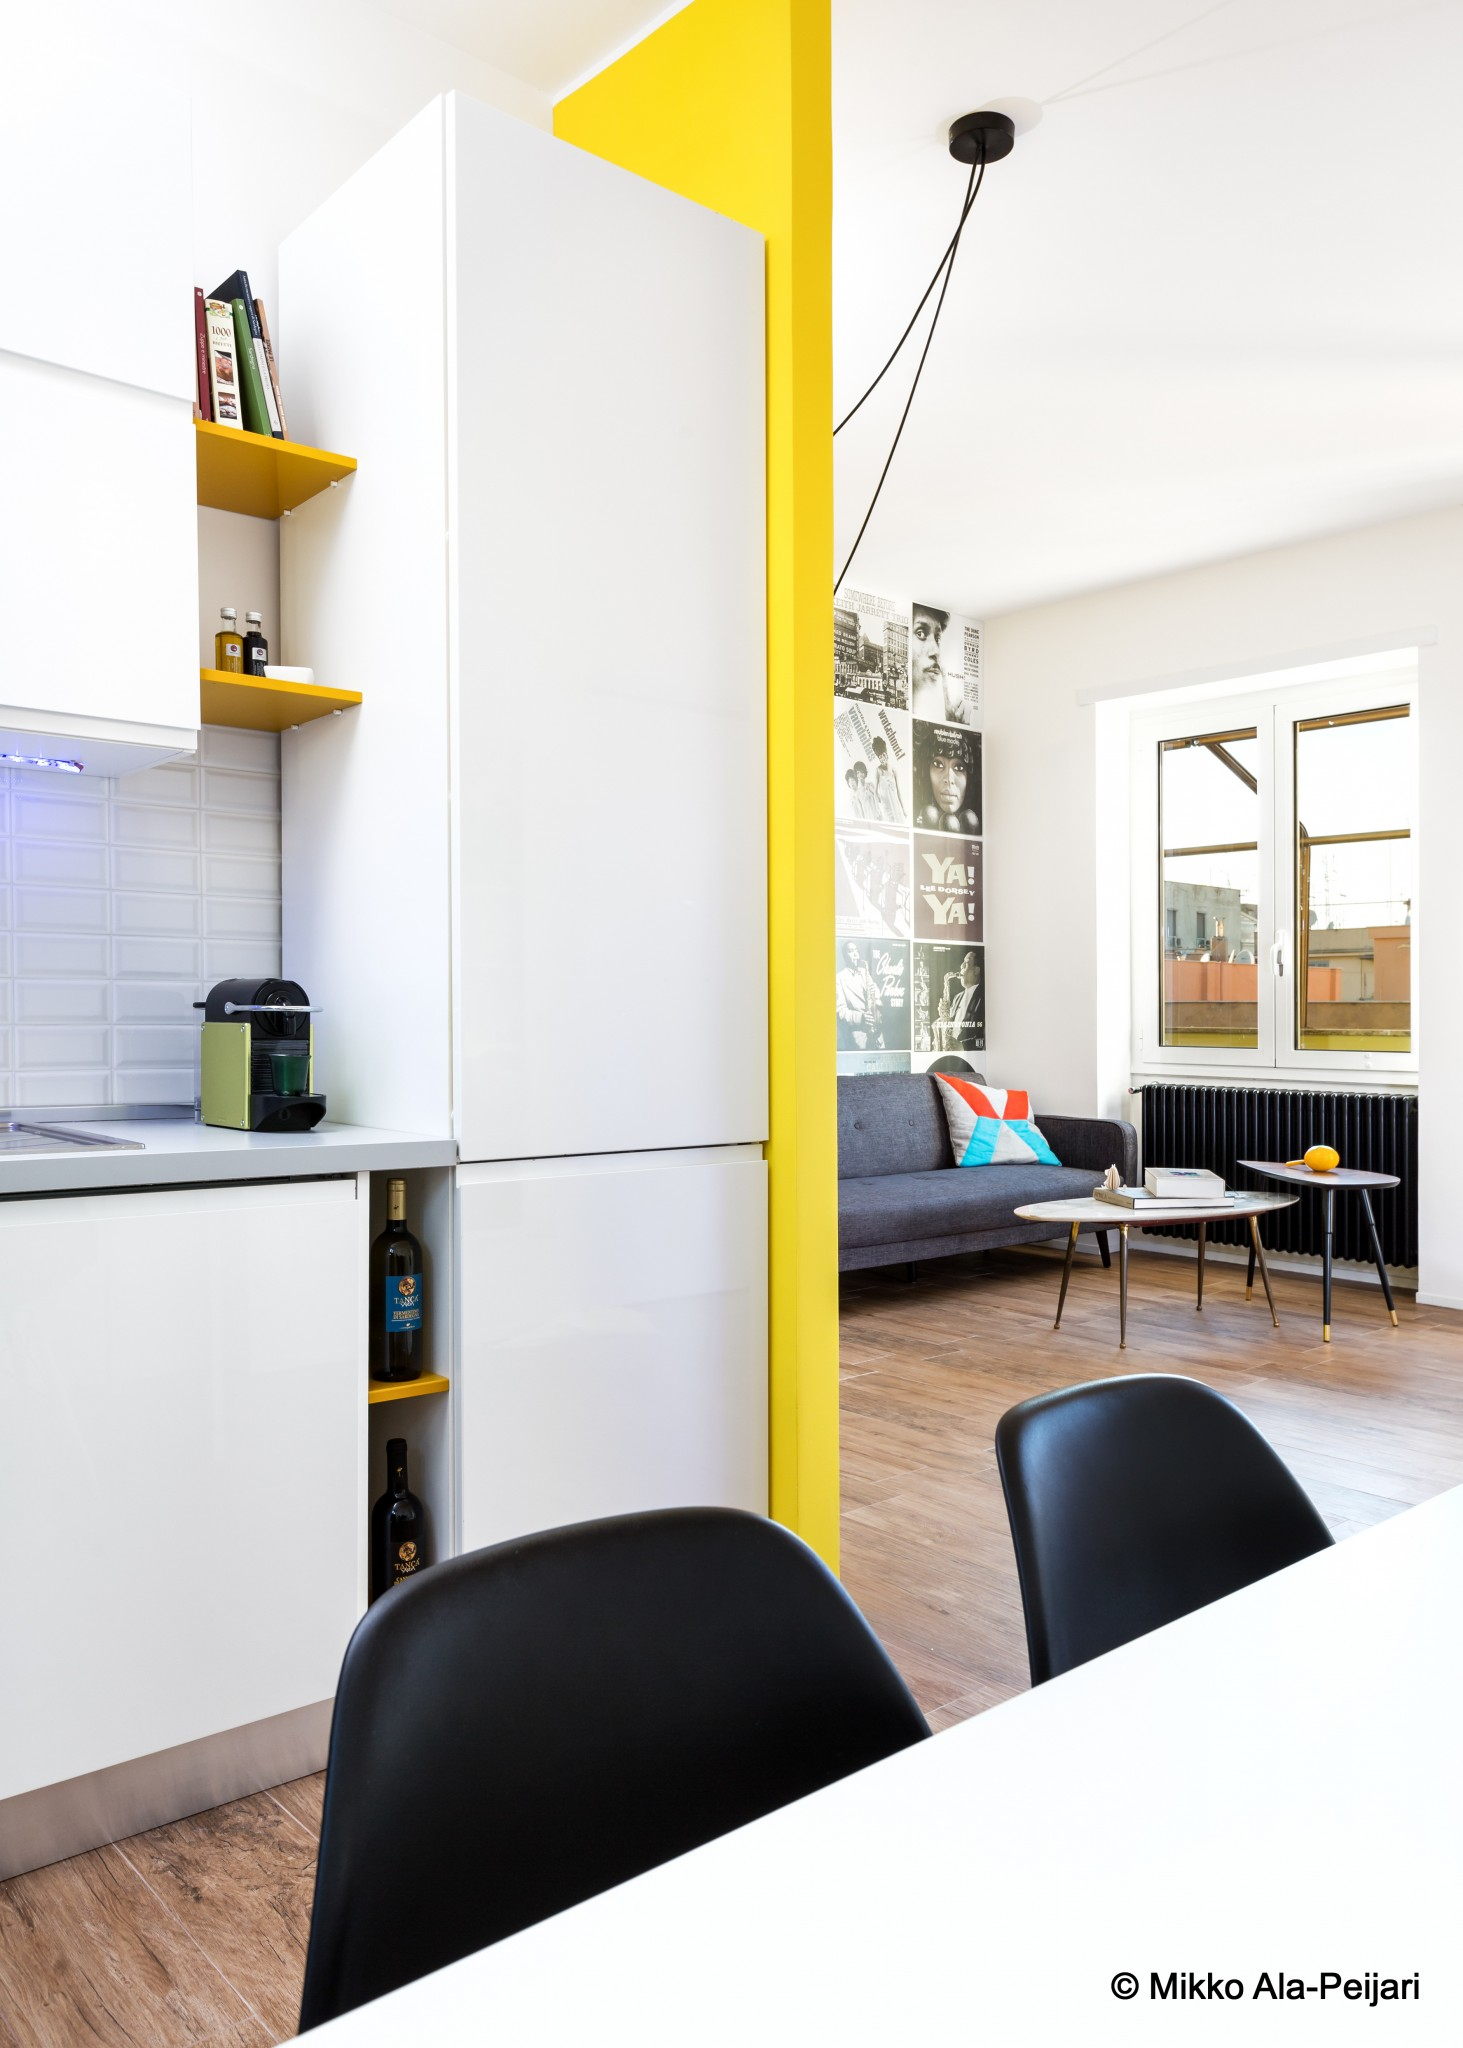 Bright colored wall as seen from adjacent spaces.